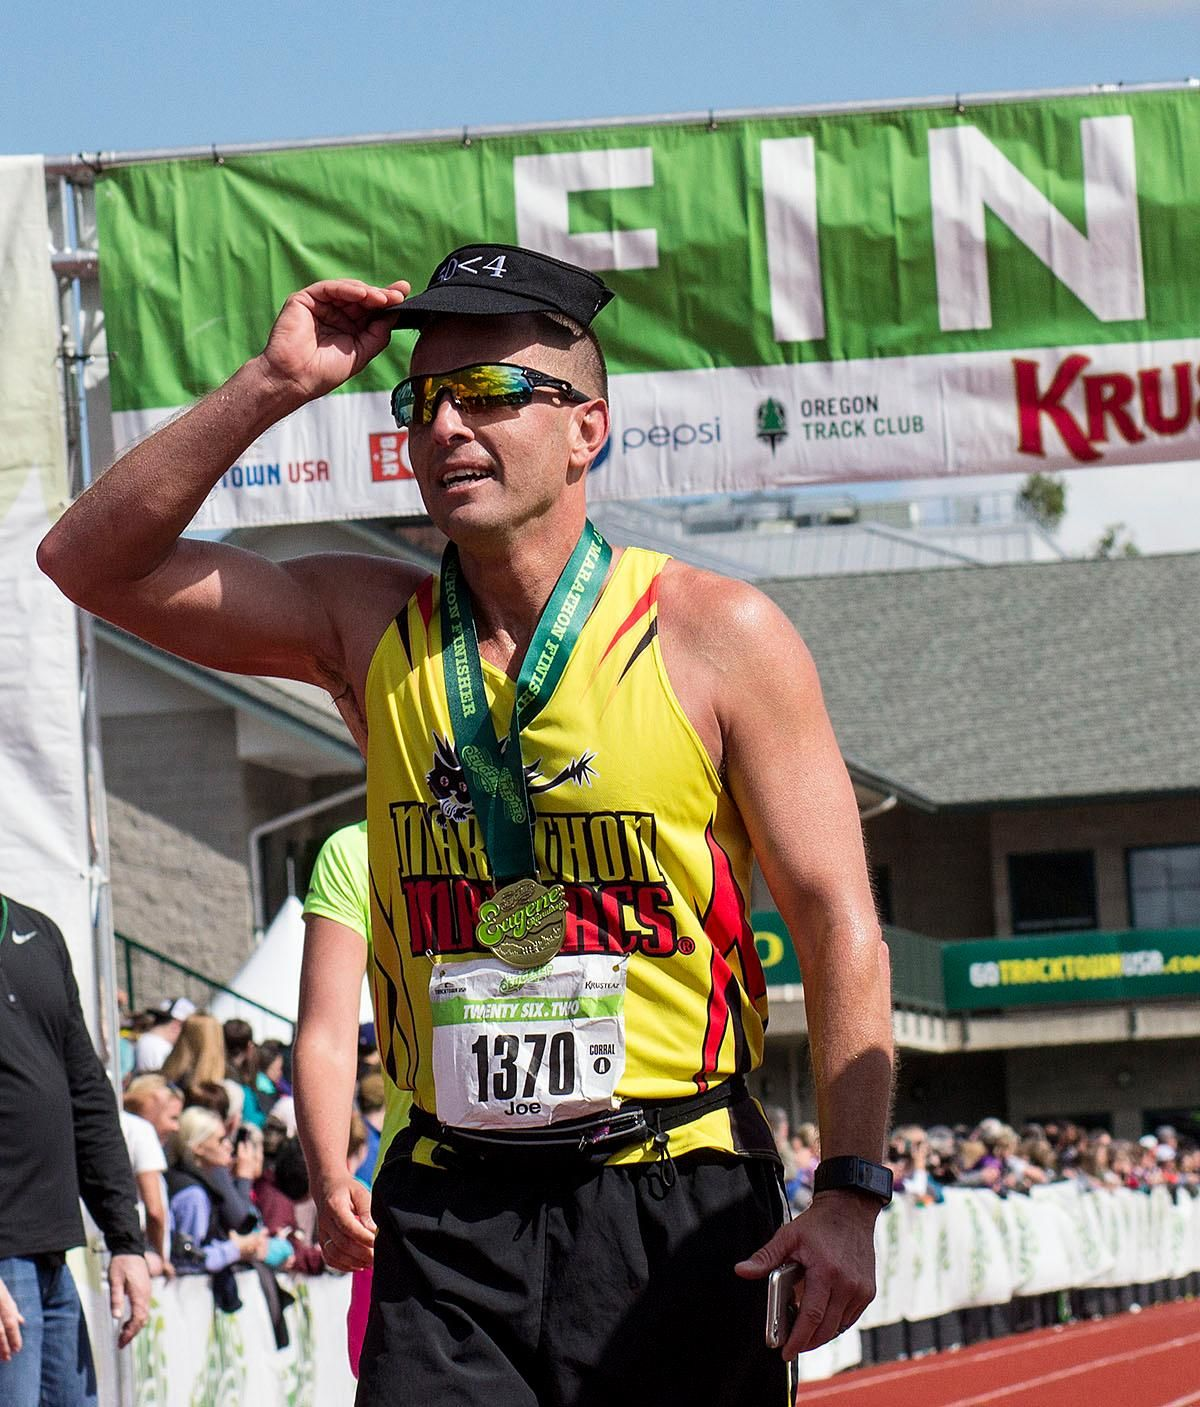 The 11th Annual Eugene Marathon was won by Steve DeKoker with a time of 02:29:46 in the overall division and by Hiruni Wijayaratne in the women's division with a time of 02:43:31. The Half Marathon was won by Eric Finan with a time of 01:06:11 and the first woman to finish the Half was Ashley Nichols with a time of 01:20:19. Rounding out the top five in the Full Marathon was Raul Arcos 02:30:40; Shaun Frandsen 02:31:50, Bashar Ibrahim 02:33:52, and Stephen Harris 02:34:45. In the women's division Hiruni Wijayaratne was followed by Yelena Nanaziashvili 02:44:11, Marisa Ryan 02:46:50, Heather Banks 02:49:47, and Karin Wimer 02:51:39. The Half Marathon top five included Yon Yilma 01:07:49, Erik Teig 01:07:52, Craig Hopkins 01:09:09, and Rio Reina 01:09:11. Photo by Aaron Alter, Oregon News Lab